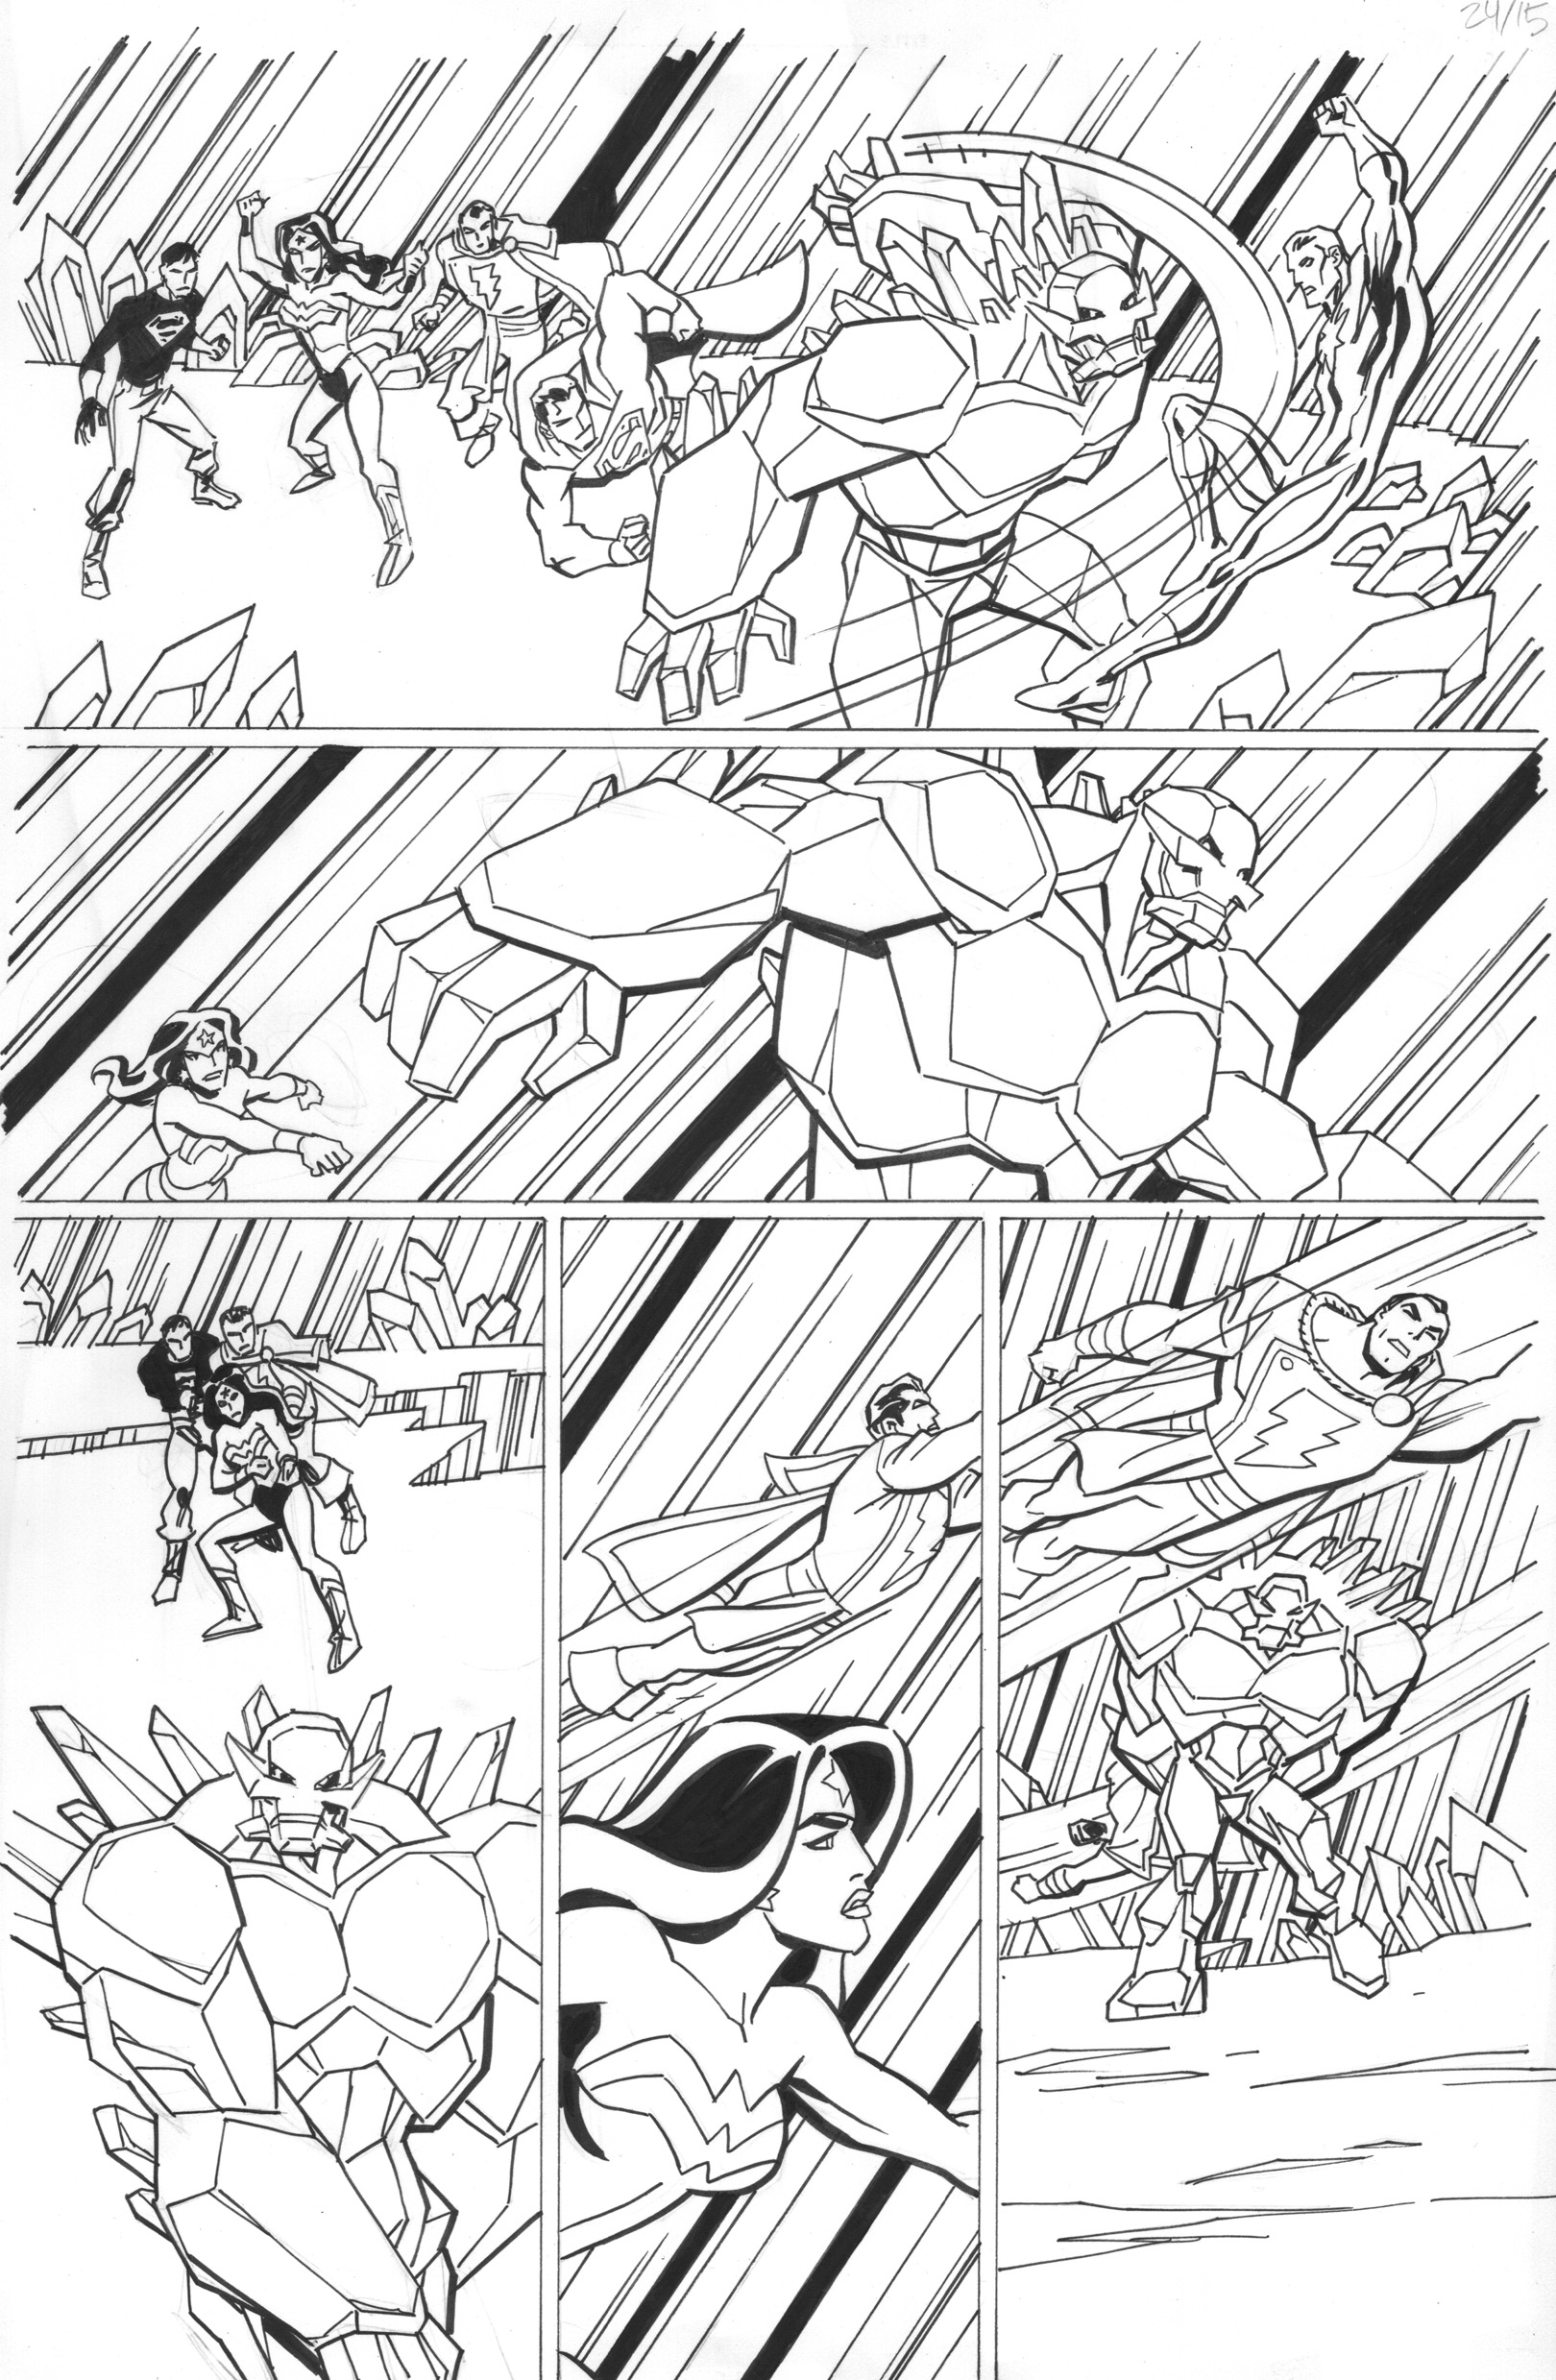 young marvel coloring pages marvel heroes by carlos pacheco marvel coloring pages young marvel coloring